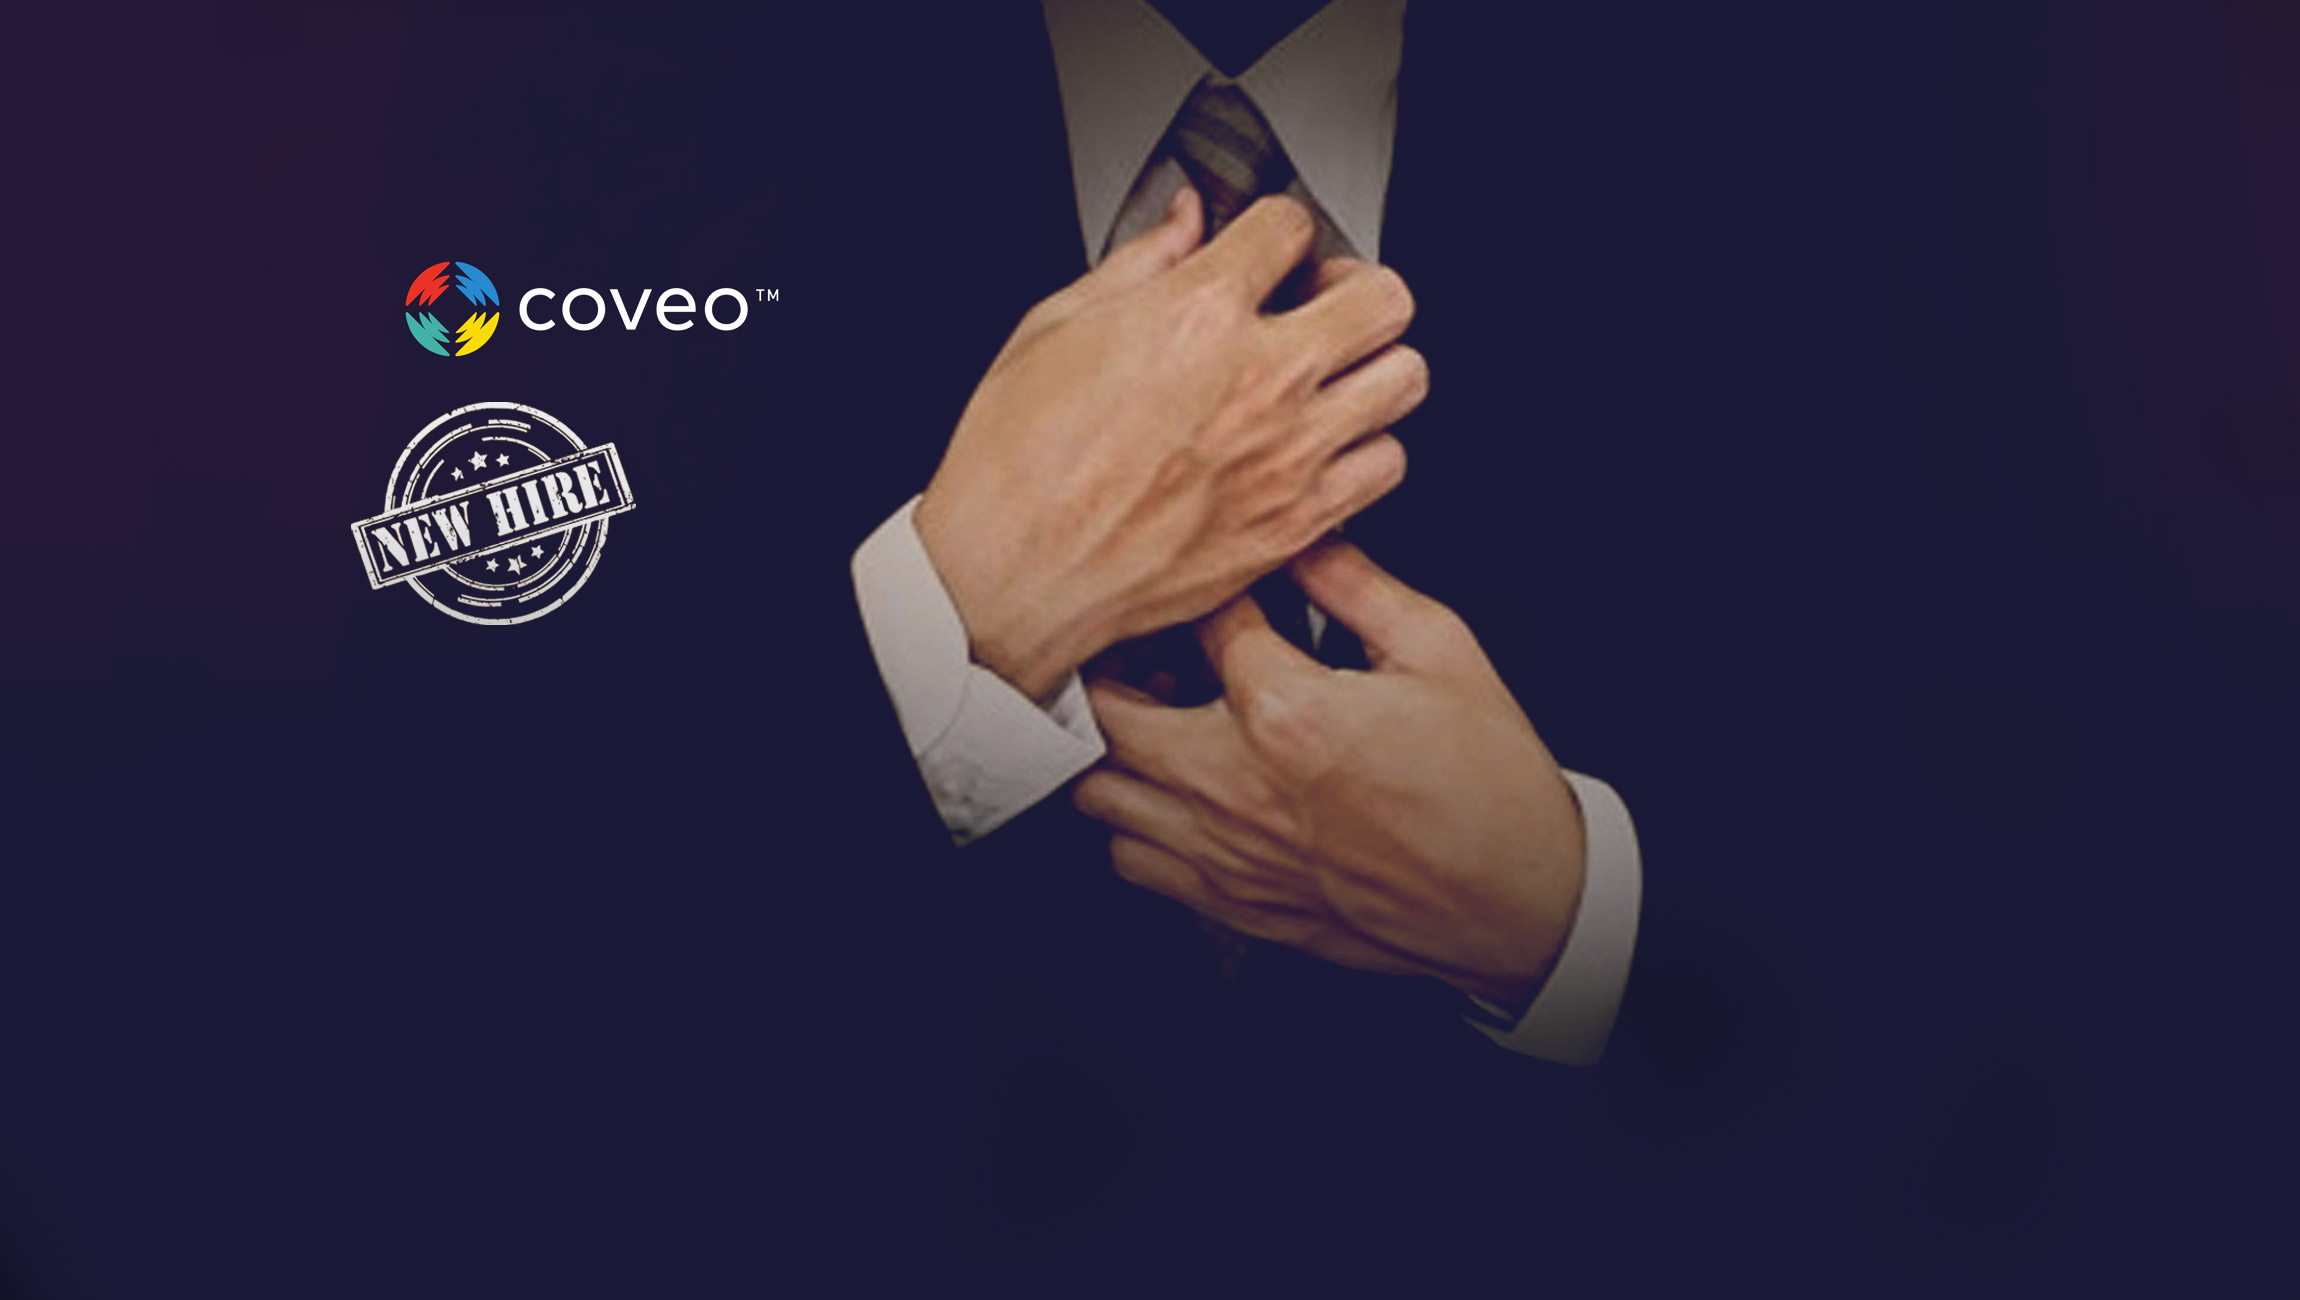 Coveo-Appoints-Brand-and-Experiential-Marketing-Leader_-Sheila-Morin_-As-Senior-Vice-President-of-Corporate-Marketing-_-Brand